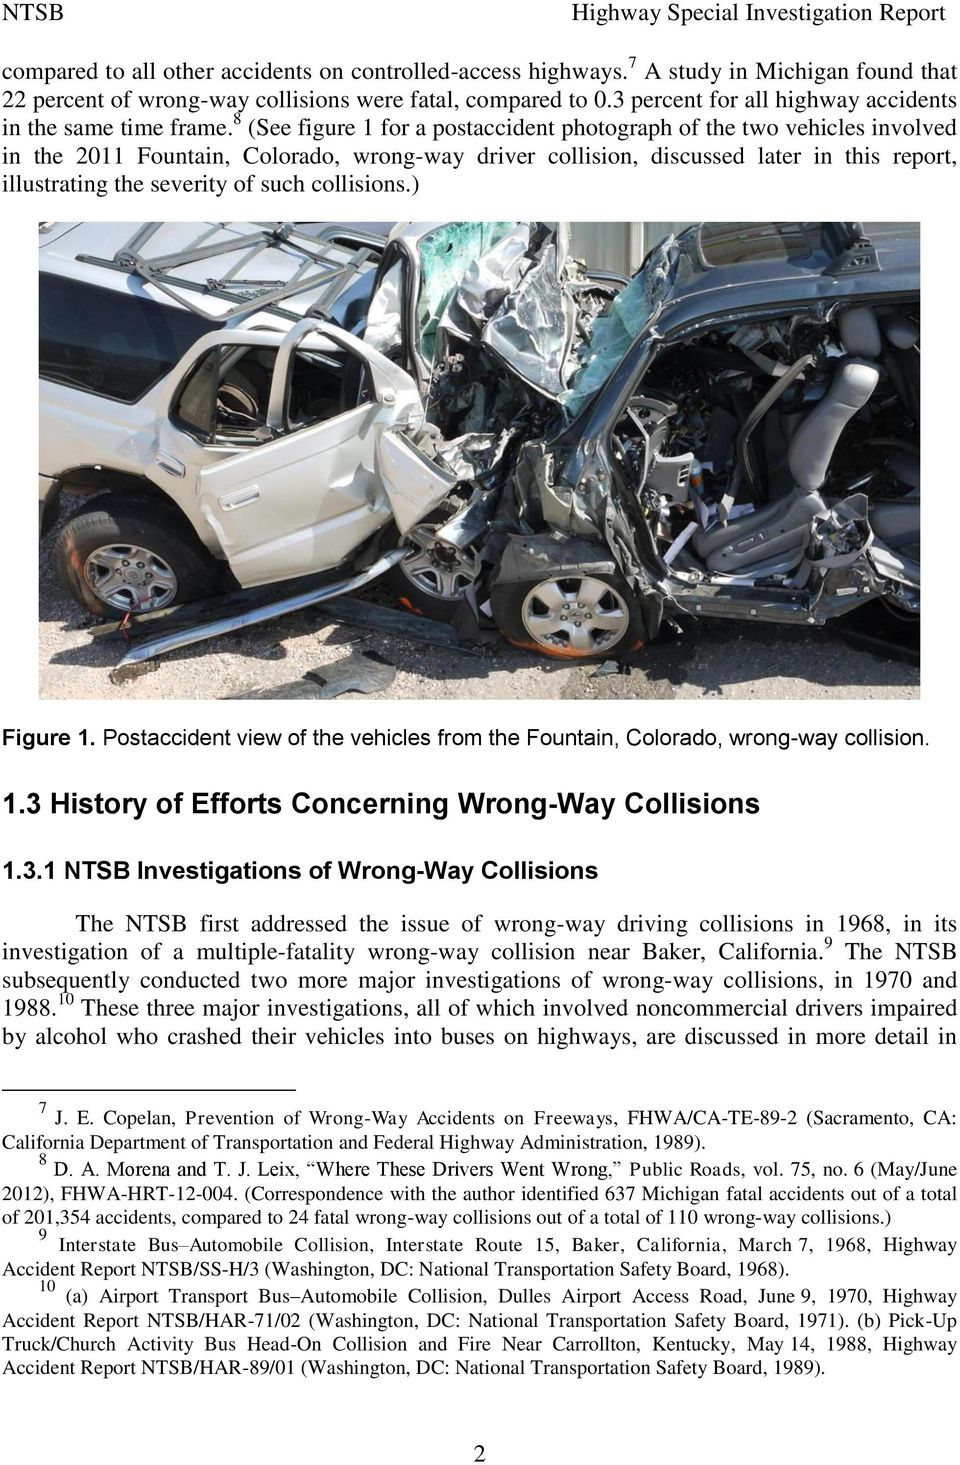 8 (See figure 1 for a postaccident photograph of the two vehicles involved in the 2011 Fountain, Colorado, wrong-way driver collision, discussed later in this report, illustrating the severity of